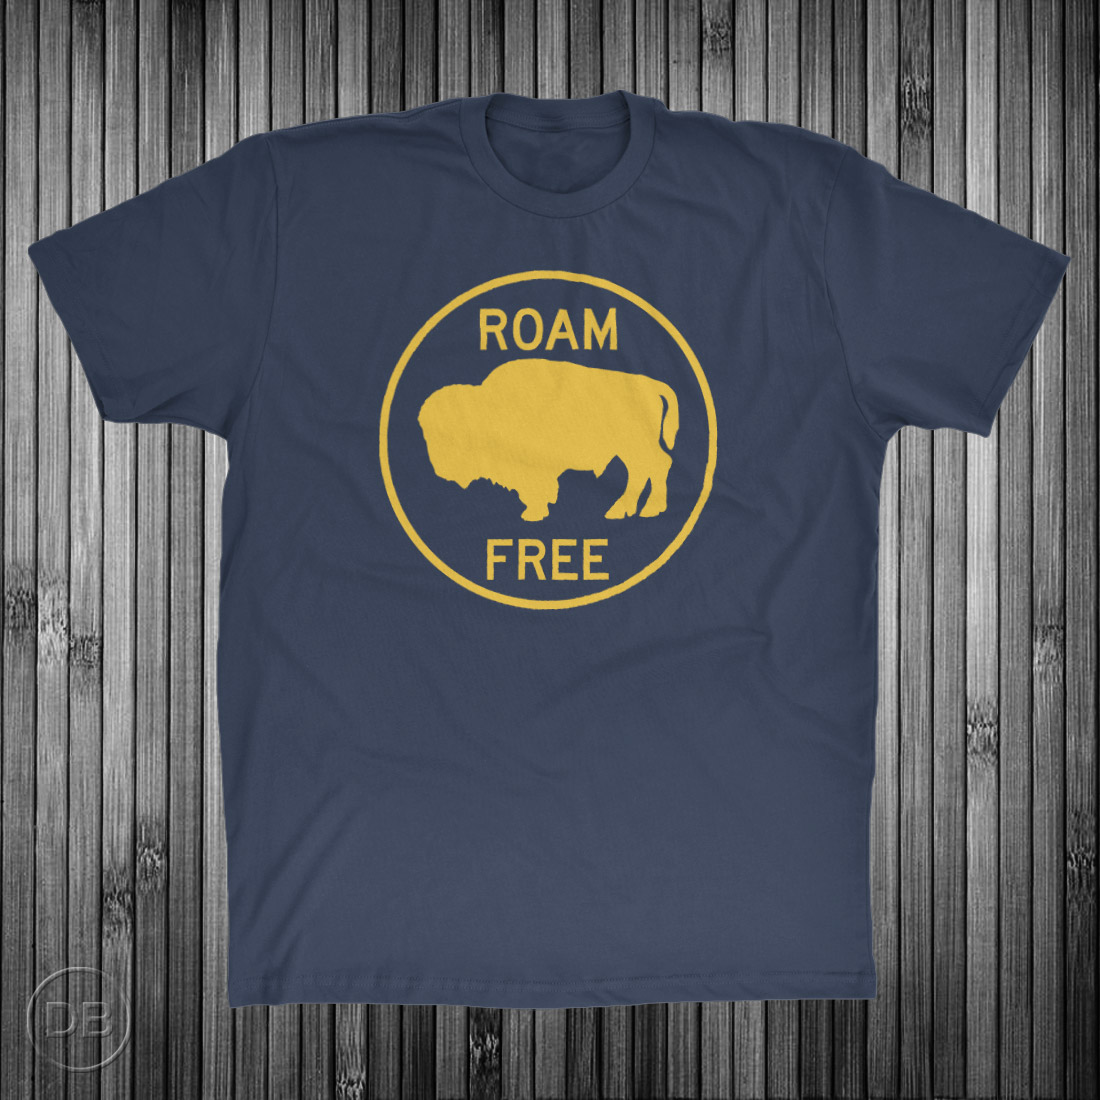 David Bernie Roam Free Shirt